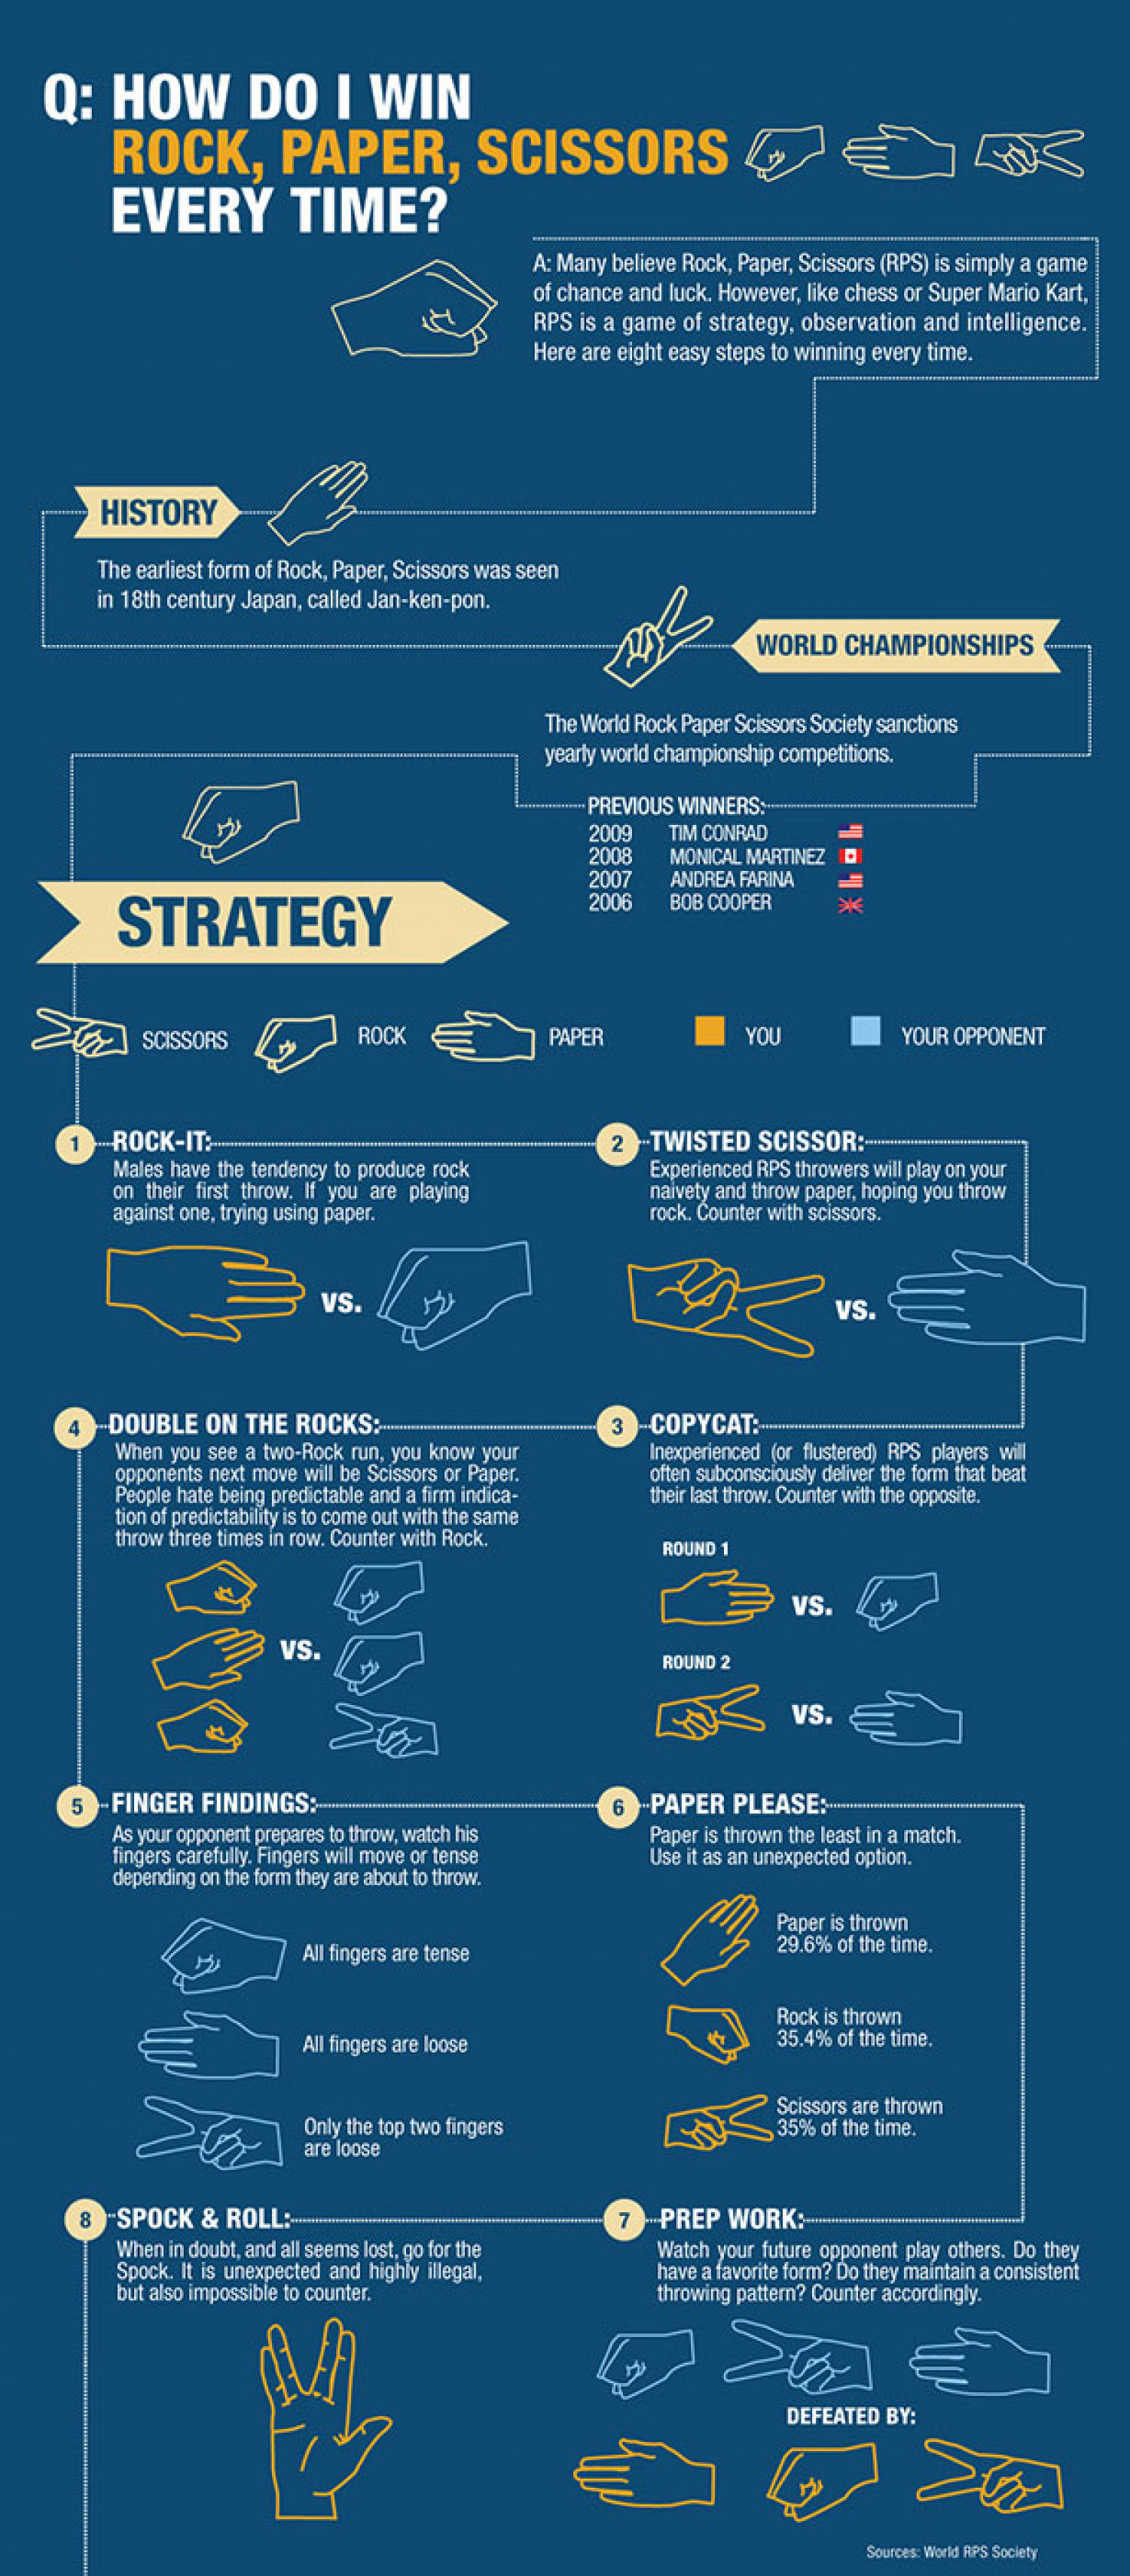 Winning Rock Paper Scissors Every Time Infographic